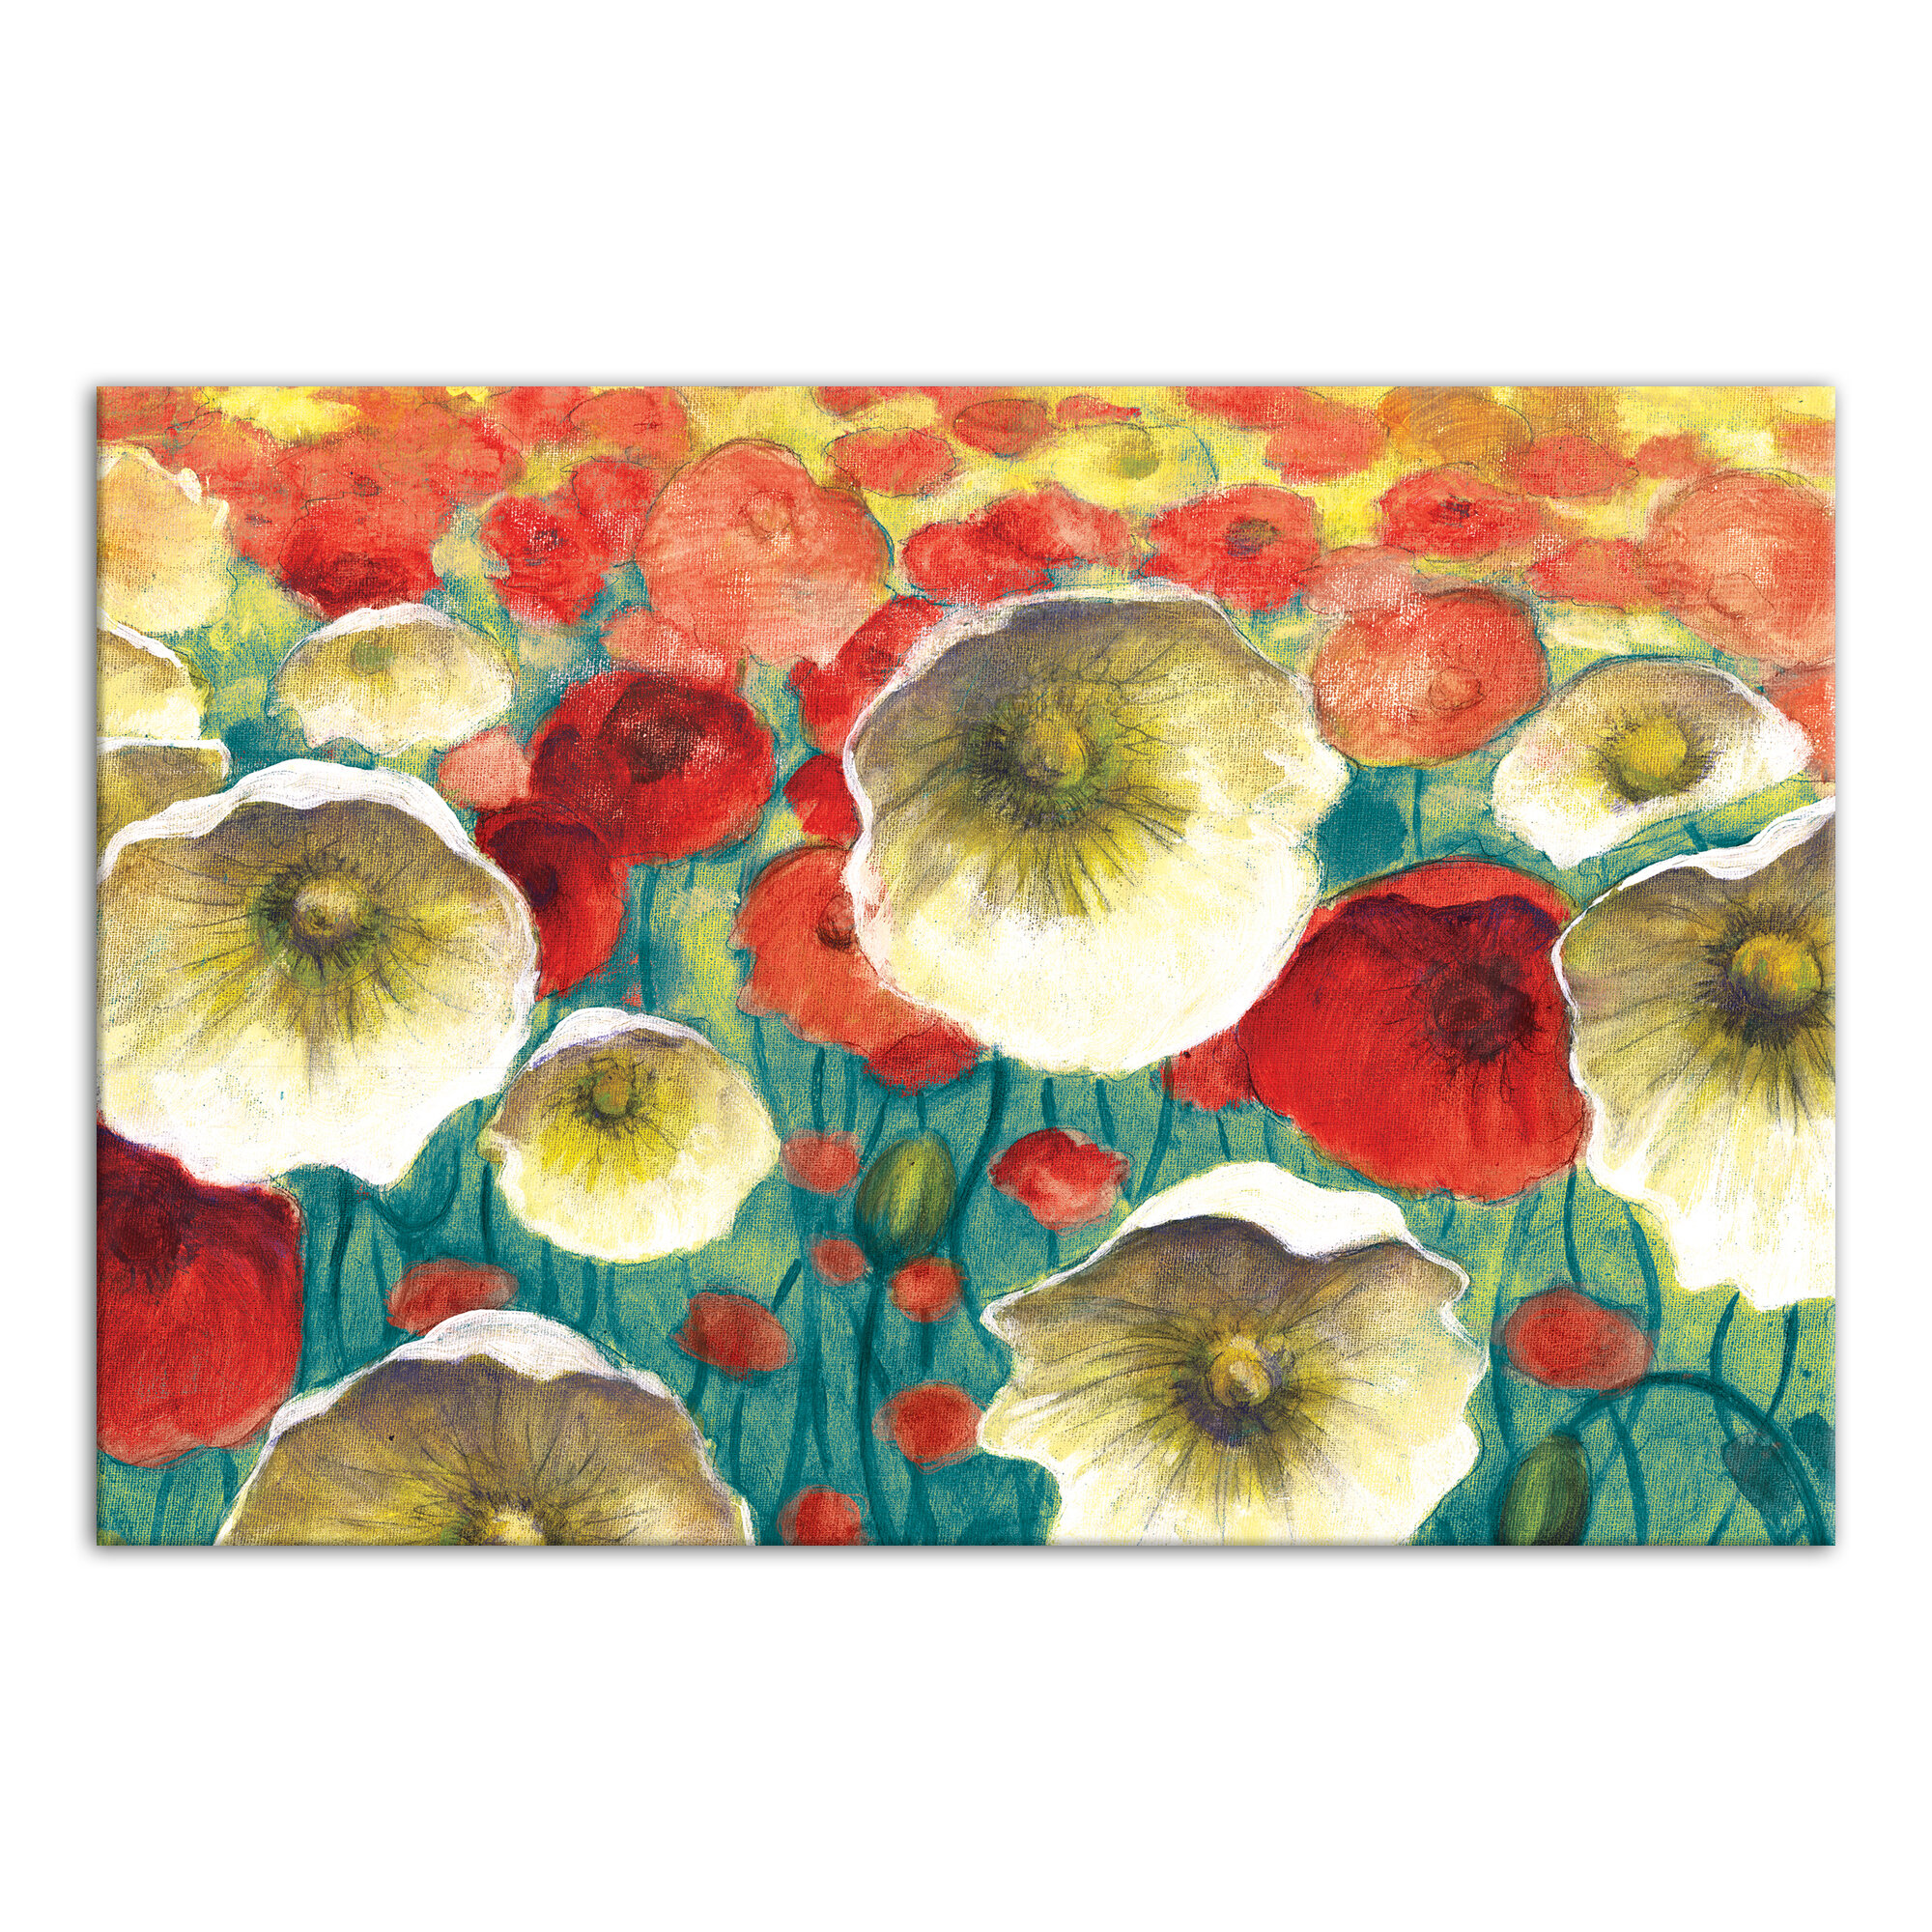 Red Barrel Studio Poppies Framed Acrylic Painting Print On Canvas